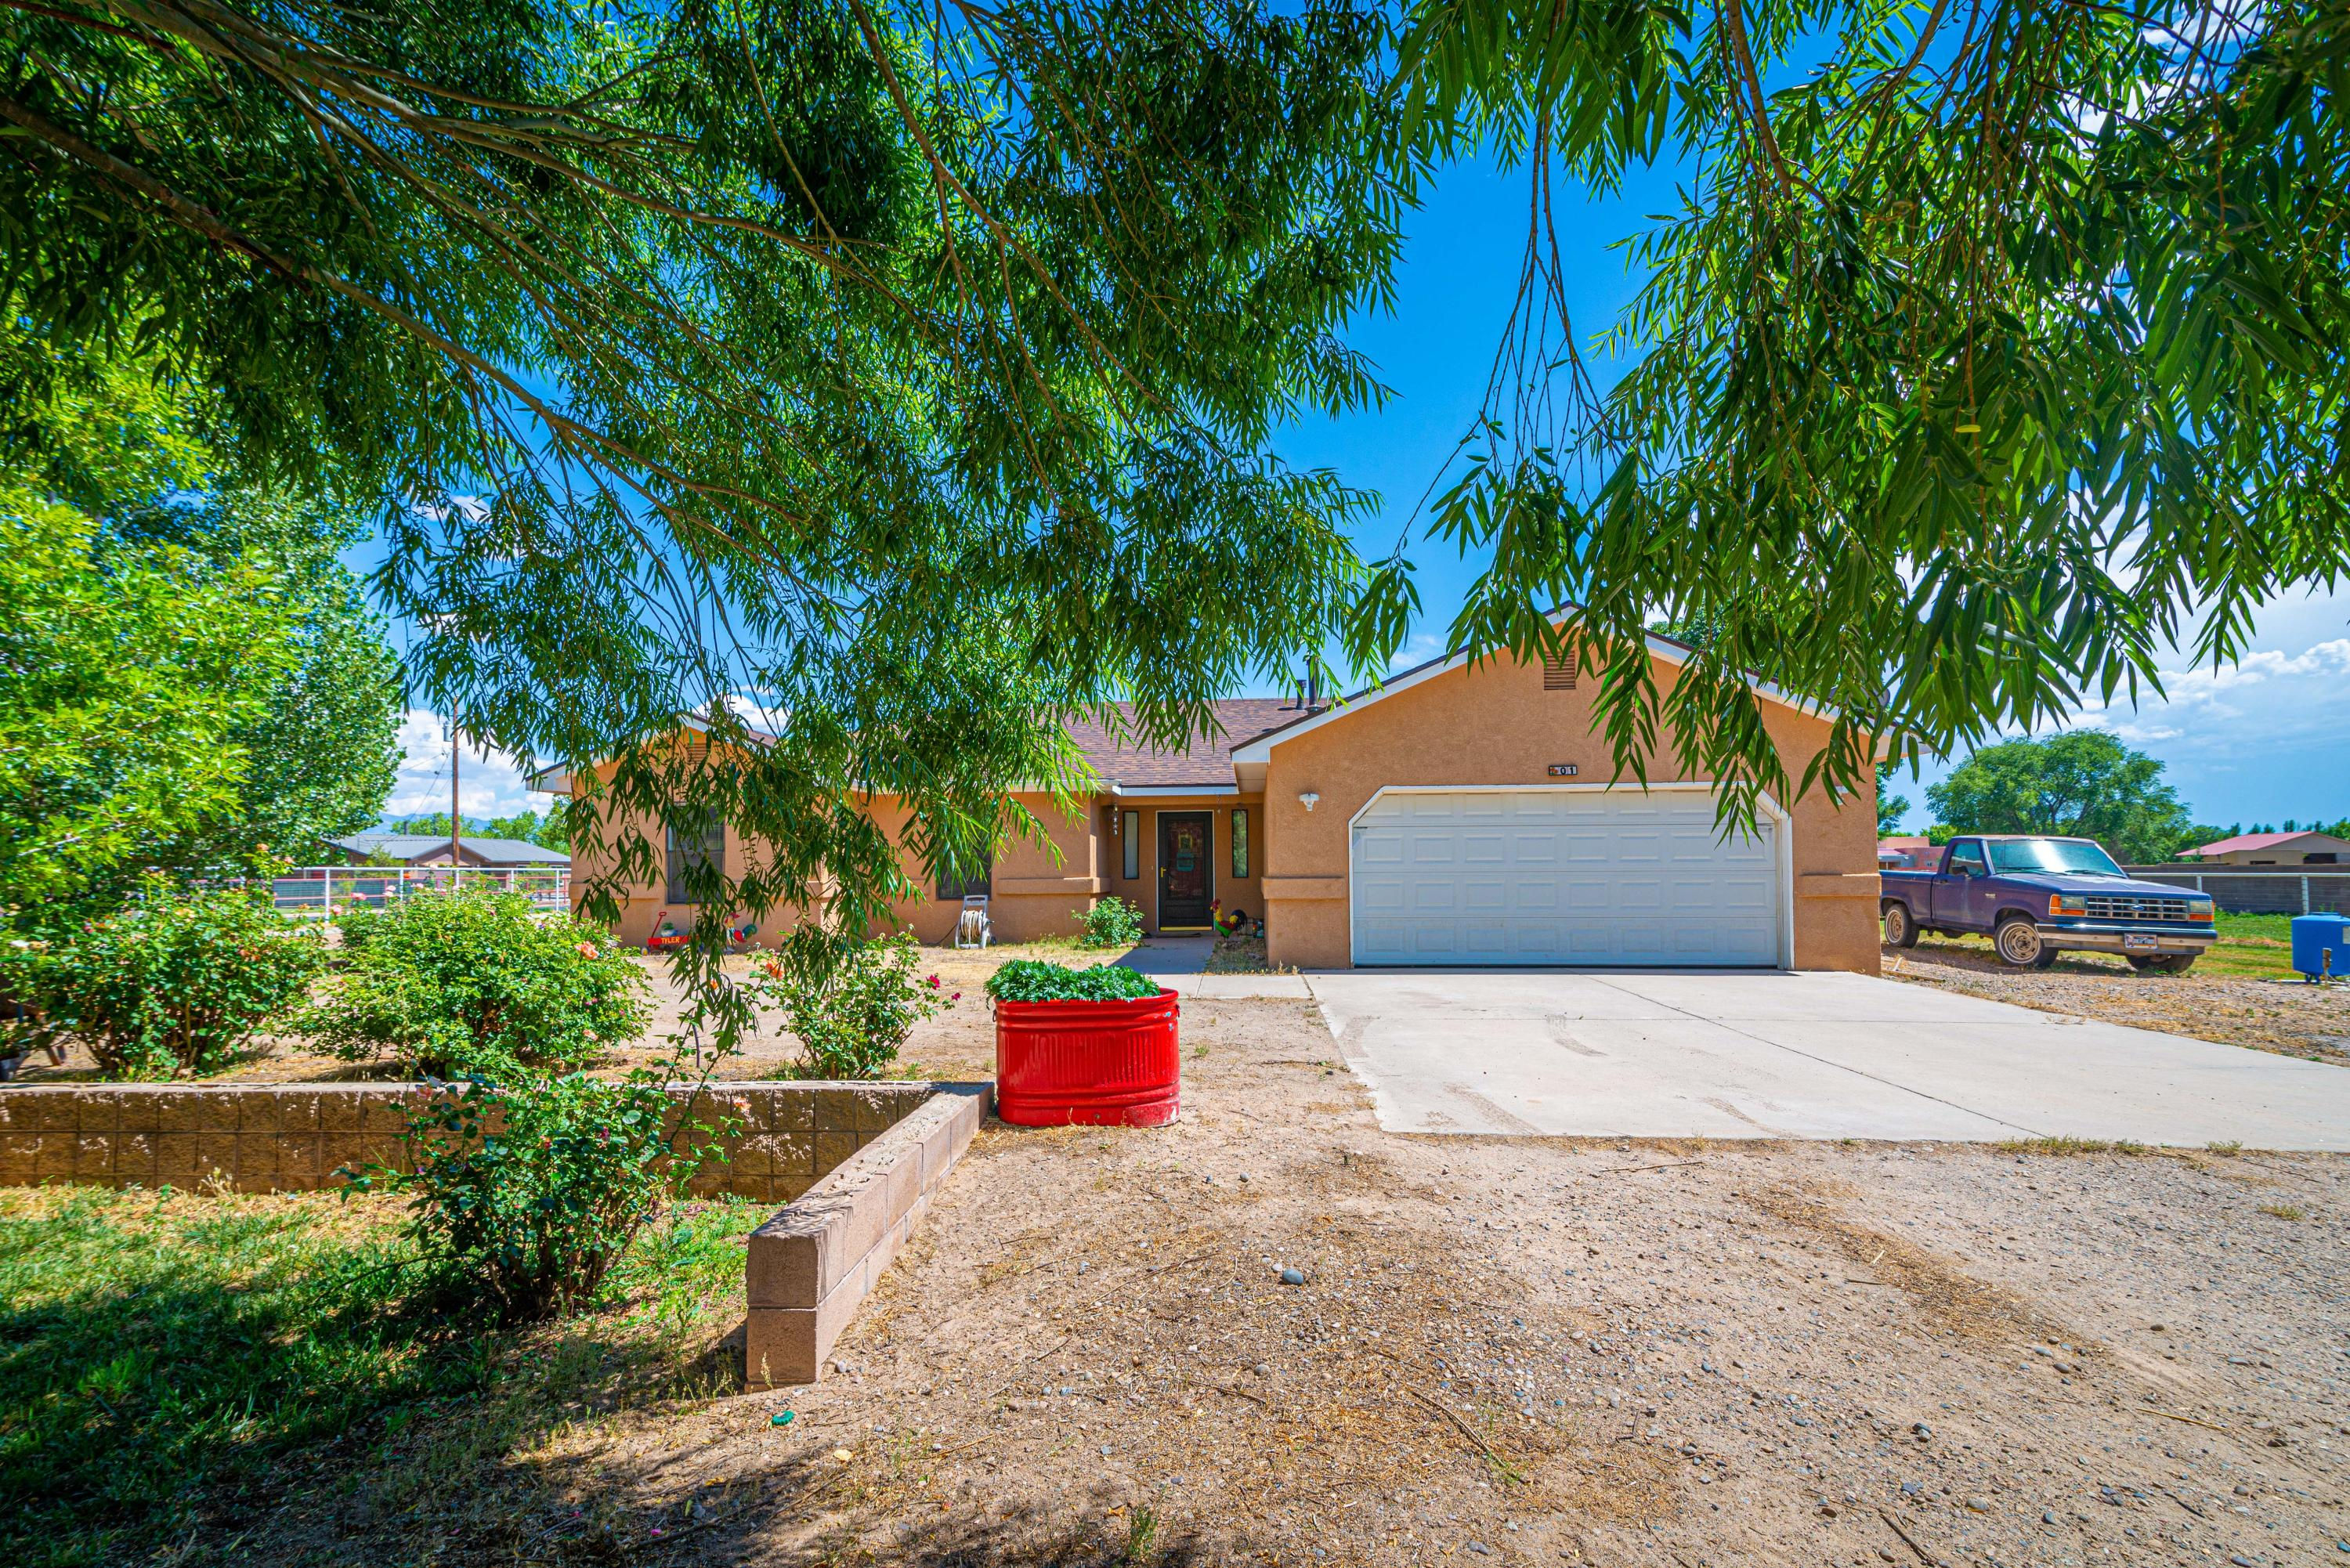 1 CALLE RISTRA Property Photo - Los Lunas, NM real estate listing